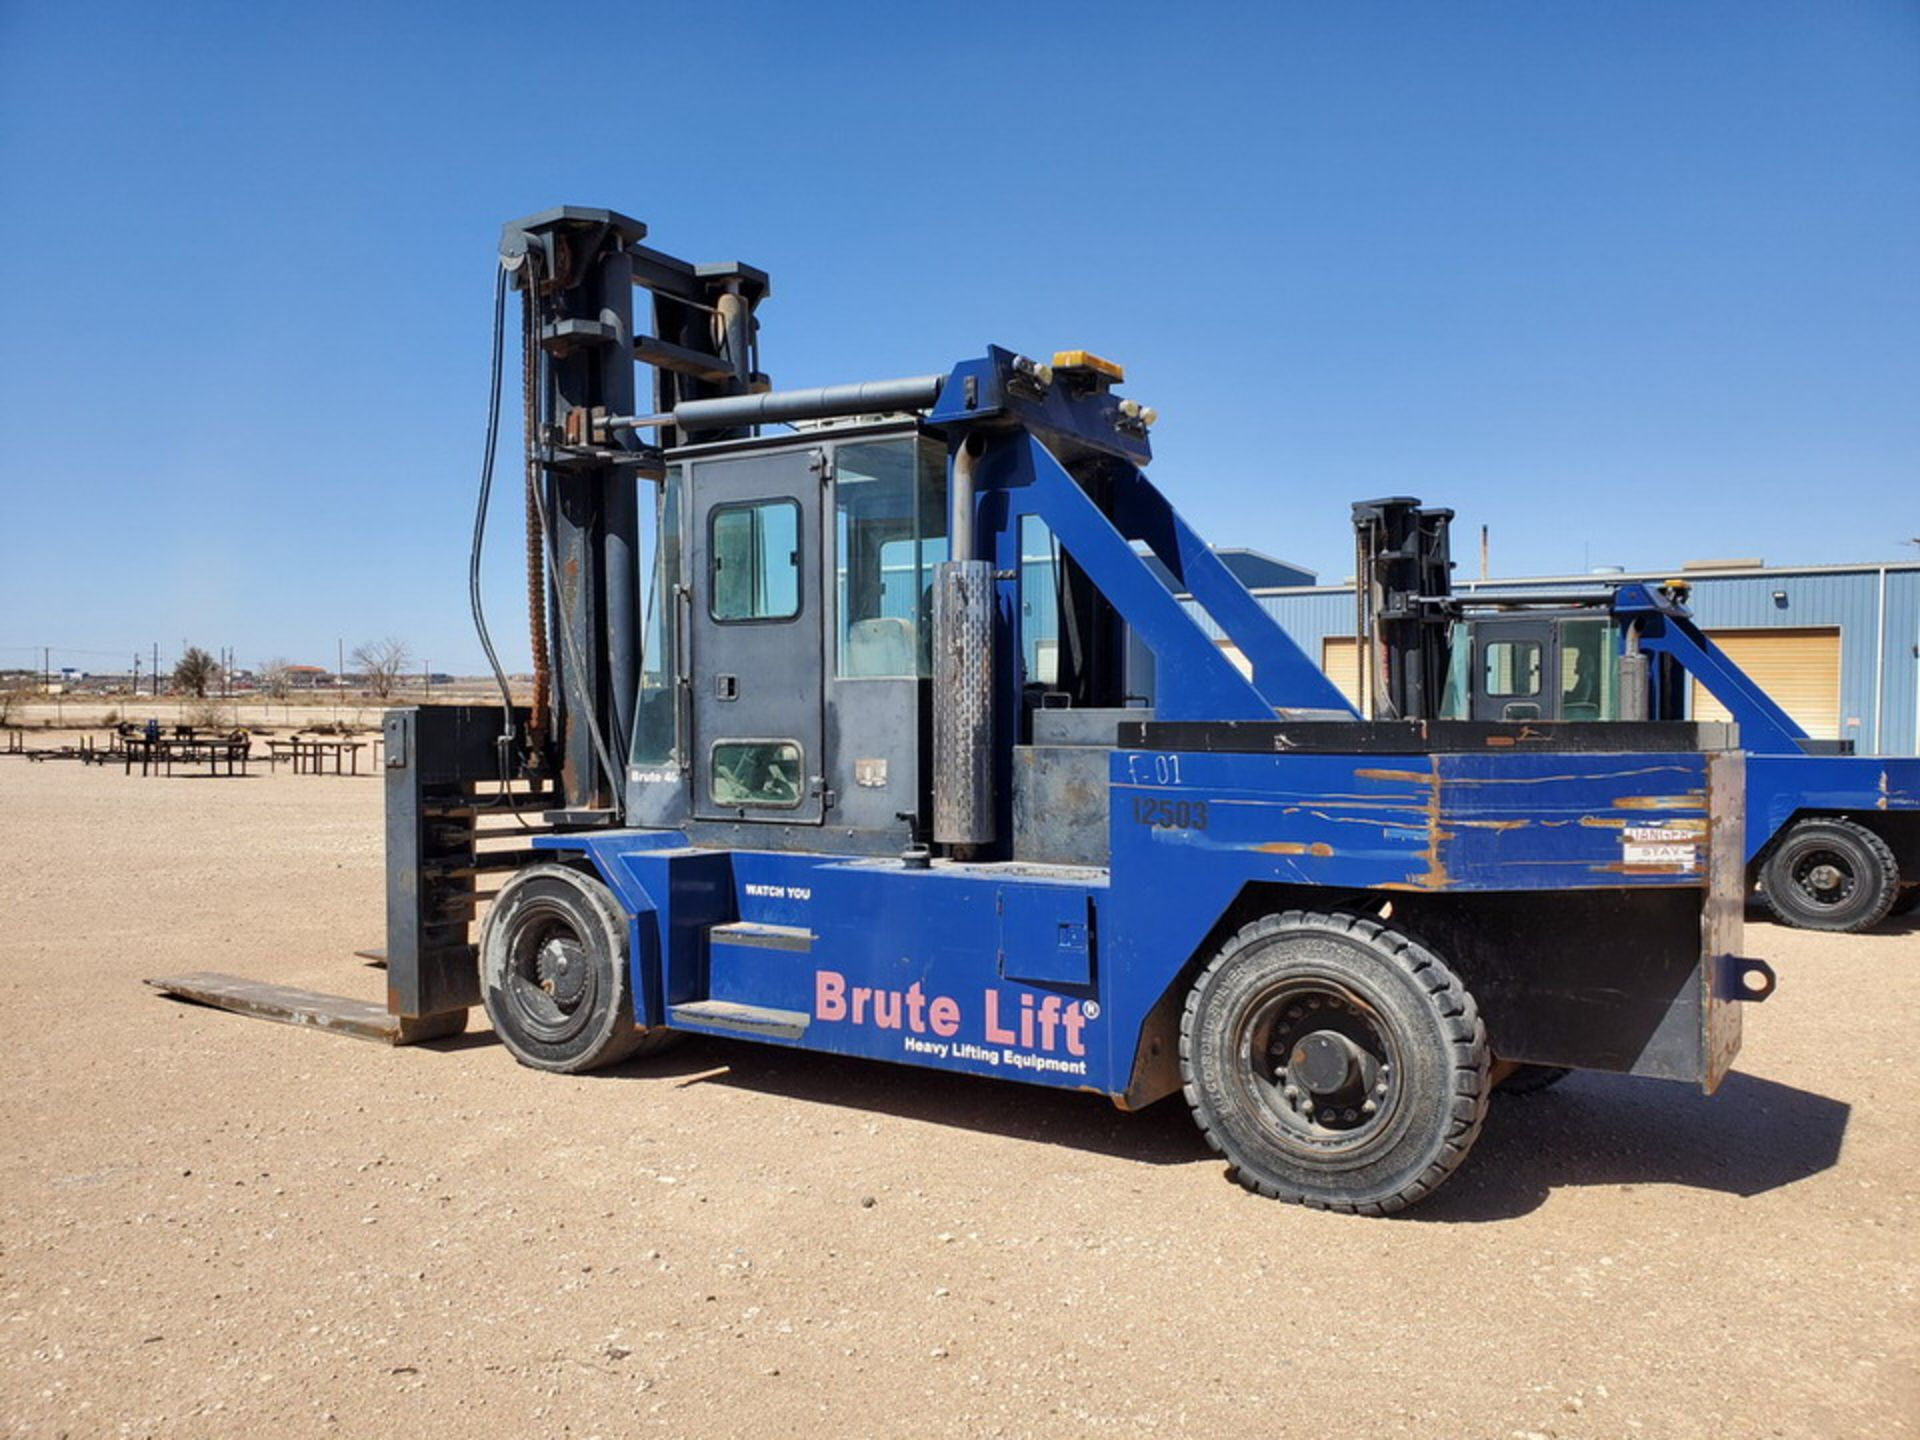 2012 Brute Lift BT40-48 Forklift 40H Cap., Engine Hrs: 3,389.3 - Image 3 of 17